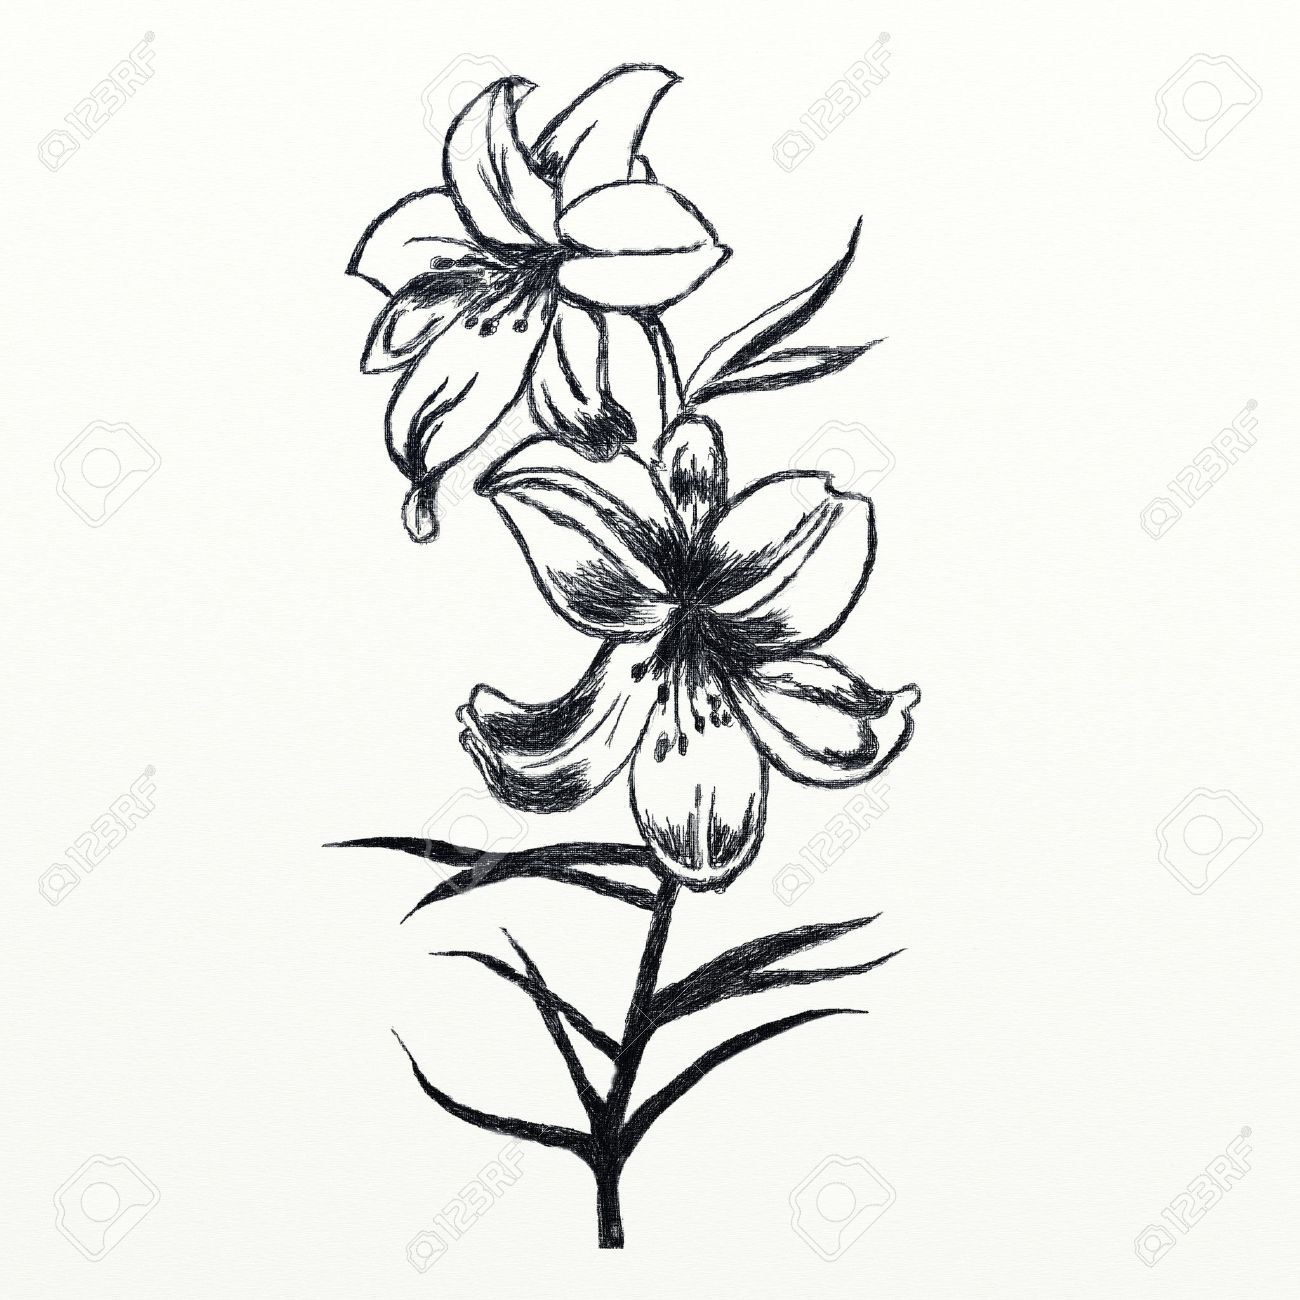 1300x1300 Sketch Of Lily Flowers In Black And White Colors Stock Photo